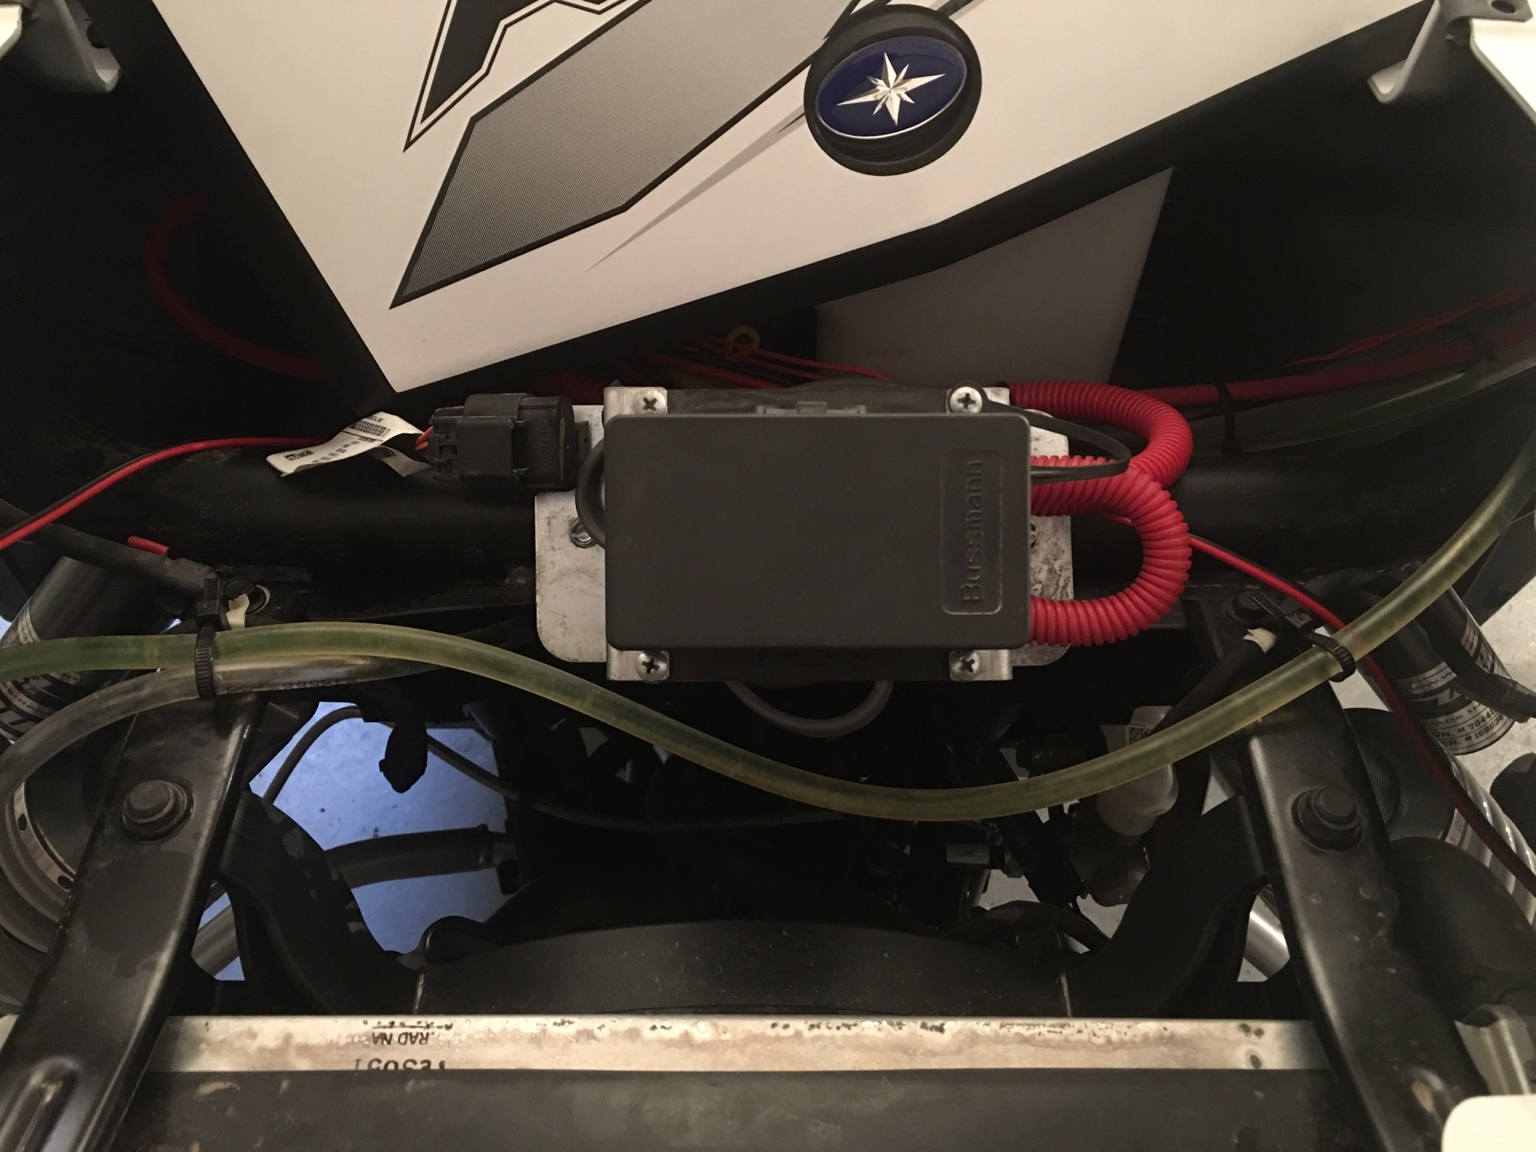 hight resolution of rzr fuse box wiring library rzr 800 exhaust manifold polaris rzr 800 fuse box motorcycle fuse